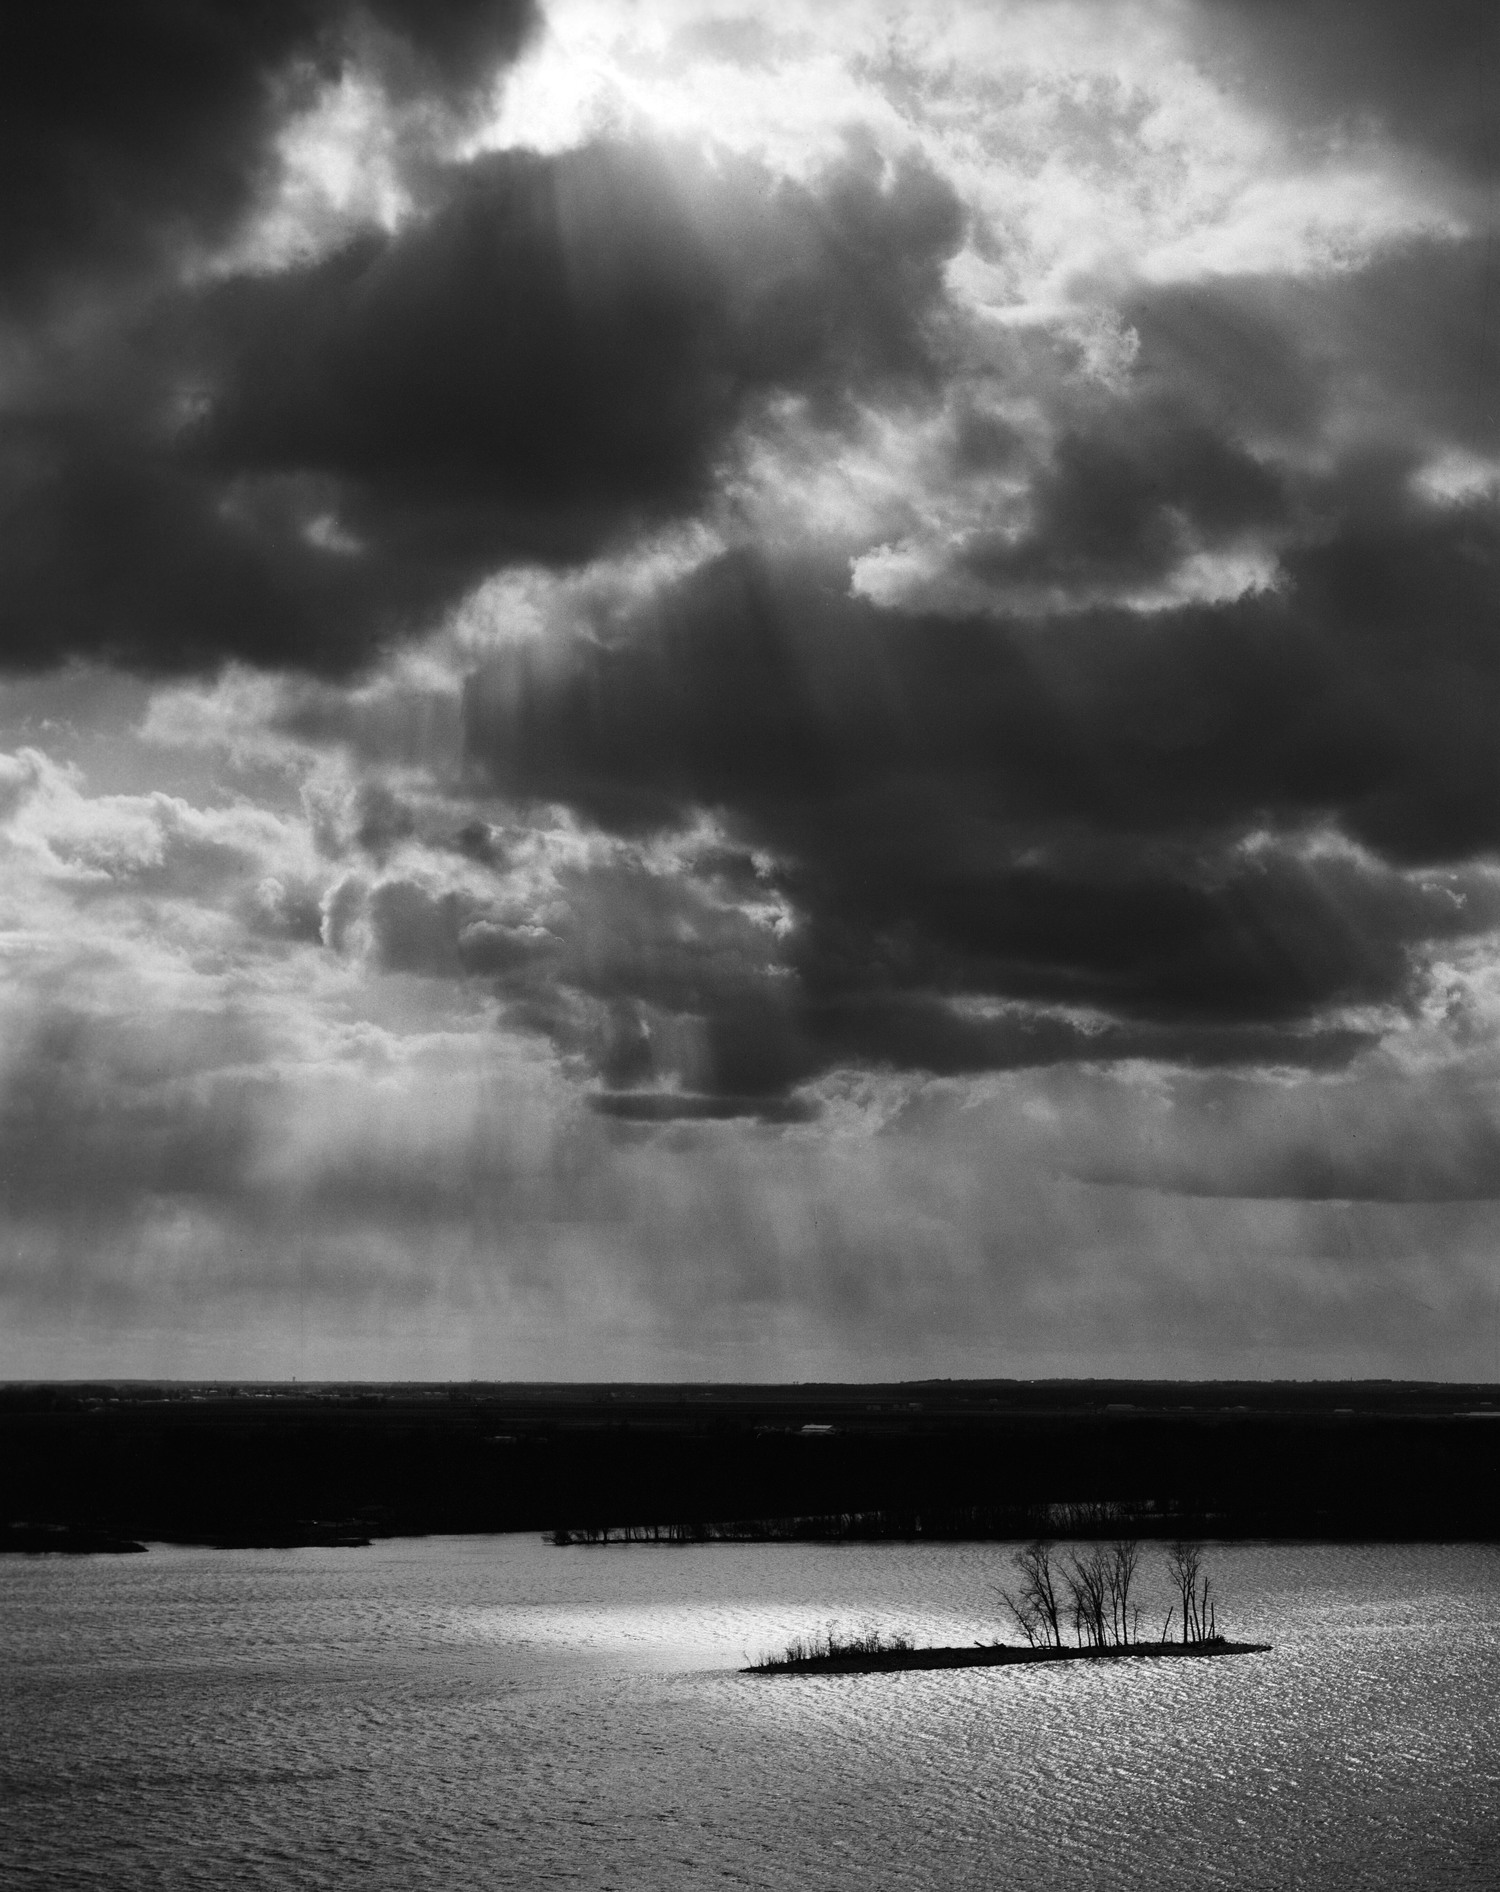 Godray over Elsah bar, Elsah IL 2012. A surprisingly mild Illinois winter was leading into a wet spring causing constant tumultuous clouds to stroll across the Mississippi River. I setup this frame with my Pentax 6x7 and waited about half an hour for a godray to illuminate the lone bar in the river.